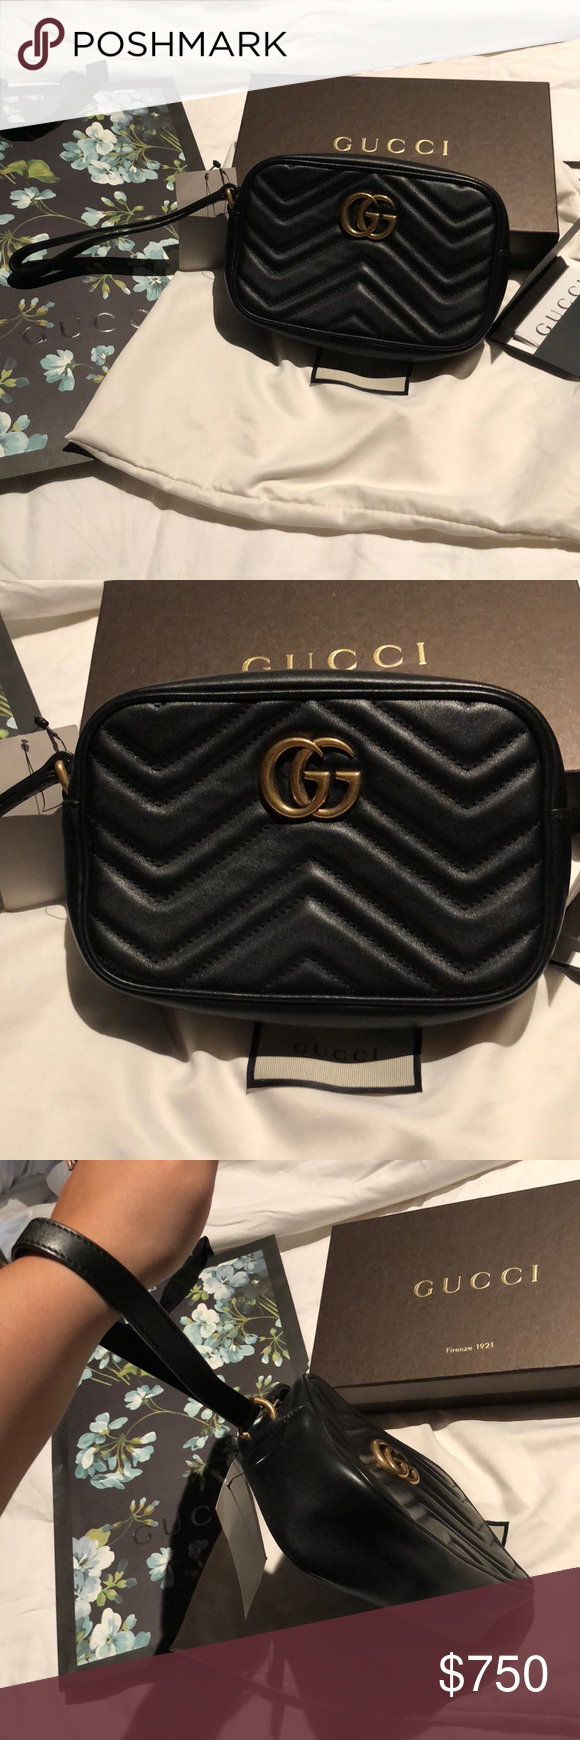 952a0ecb1d5e Gucci Marmont wristlet clutch RARE Gucci Marmont wristlet! New with tags!!  Comes with box, shopping bag, dust bag, tags and receipt upon request!